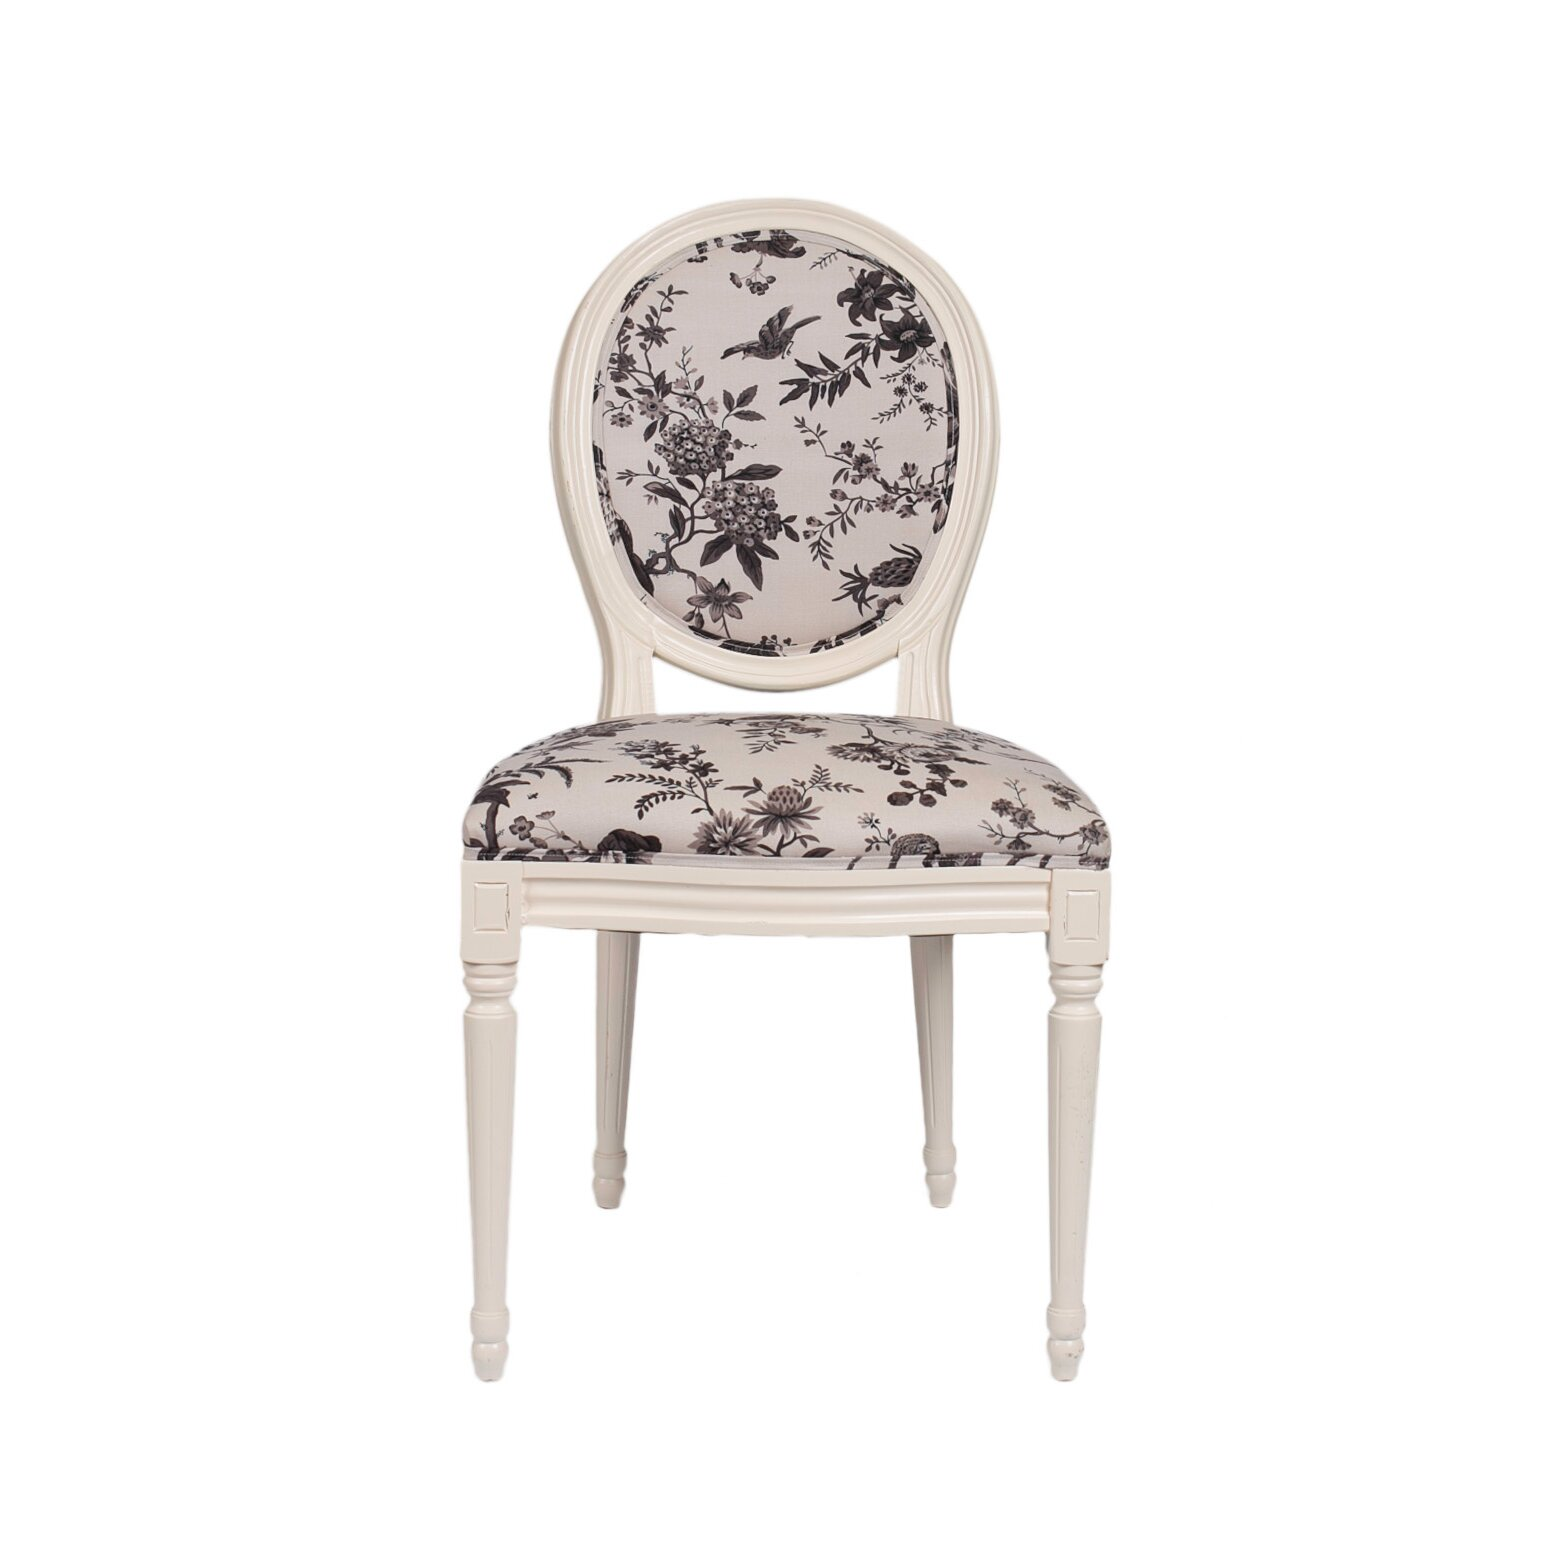 Floral Dining Room Chairs: Derry's Louis Floral Dining Chair & Reviews